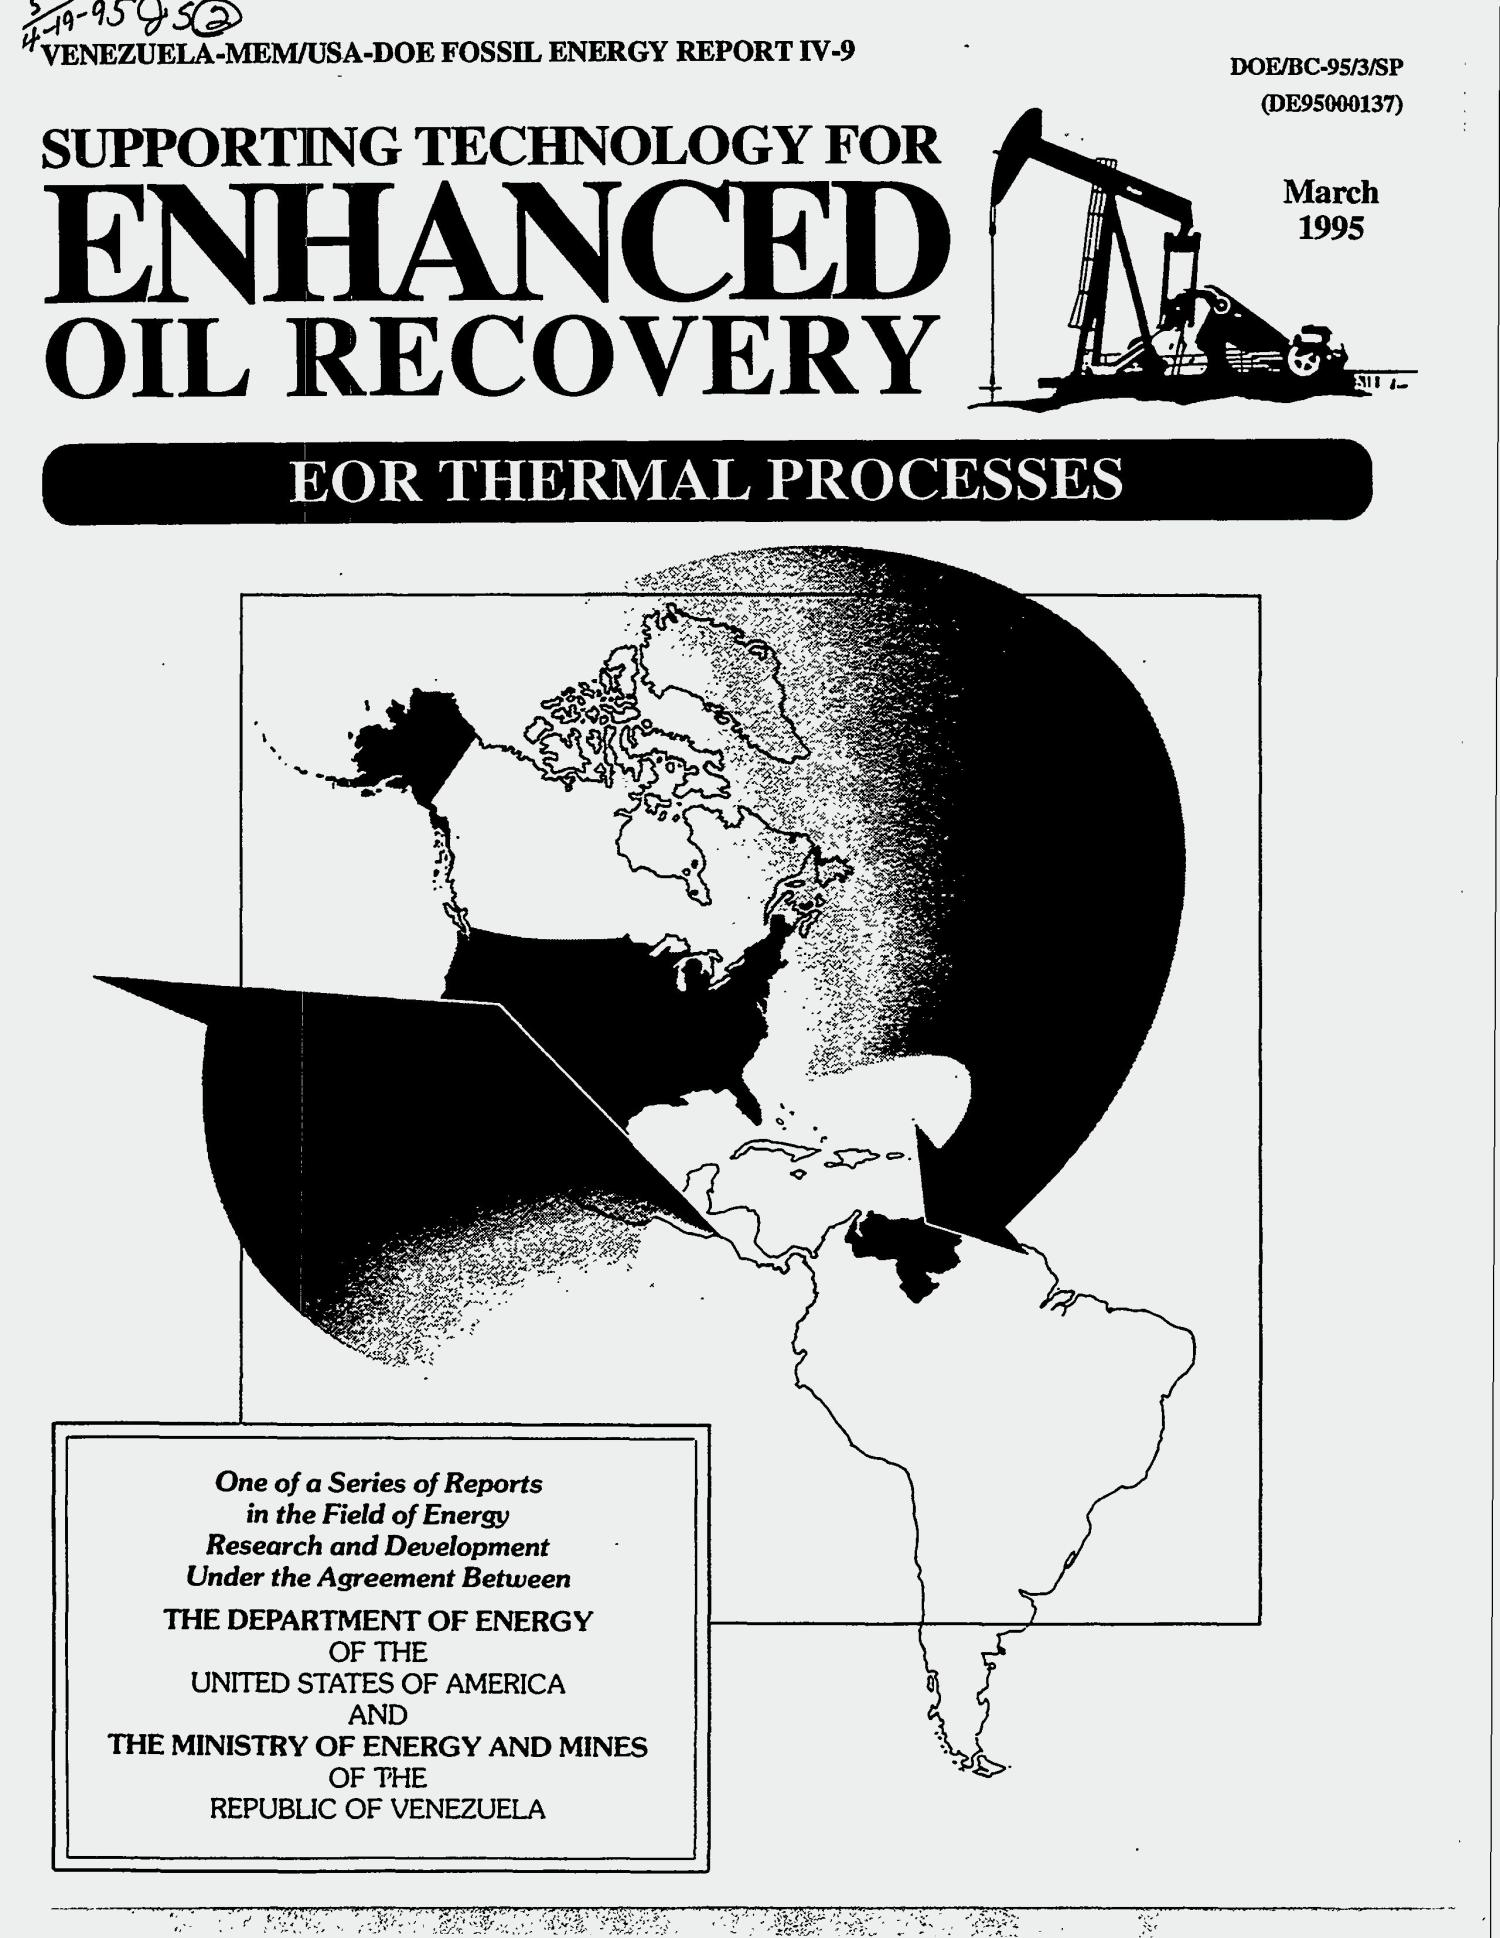 Supporting technology for enhanced oil recovery - EOR thermal processes                                                                                                      [Sequence #]: 1 of 270